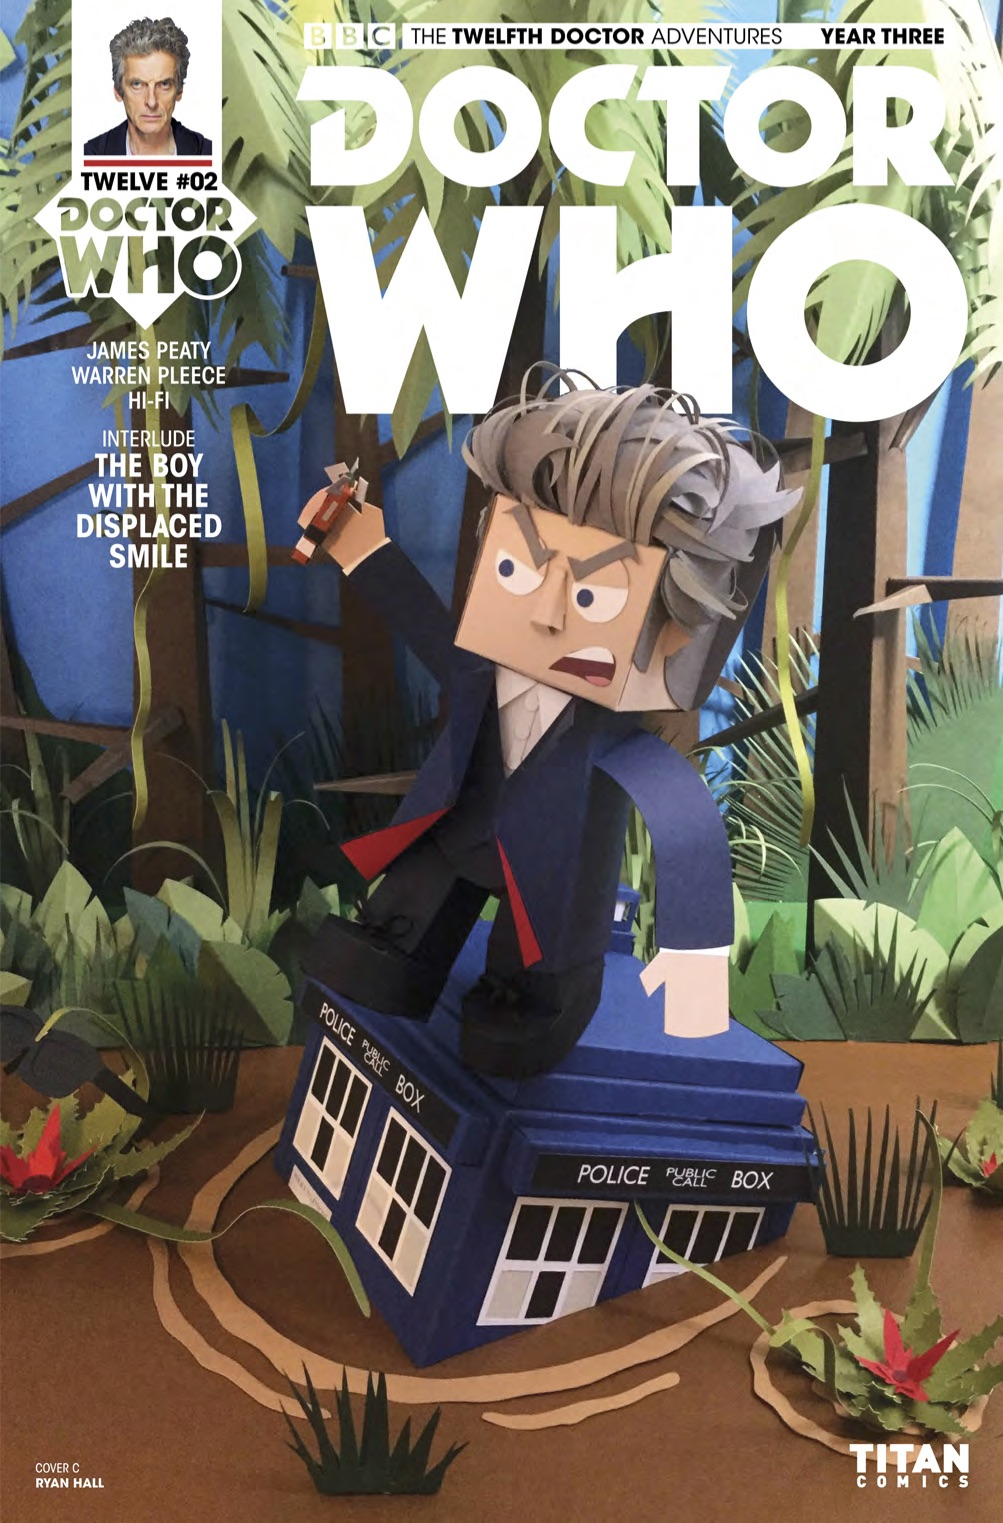 ​DOCTOR WHO: TWELFTH DOCTOR YEAR 3 #2 COVER C - LINKED SET OF FOUR Ryan Hall